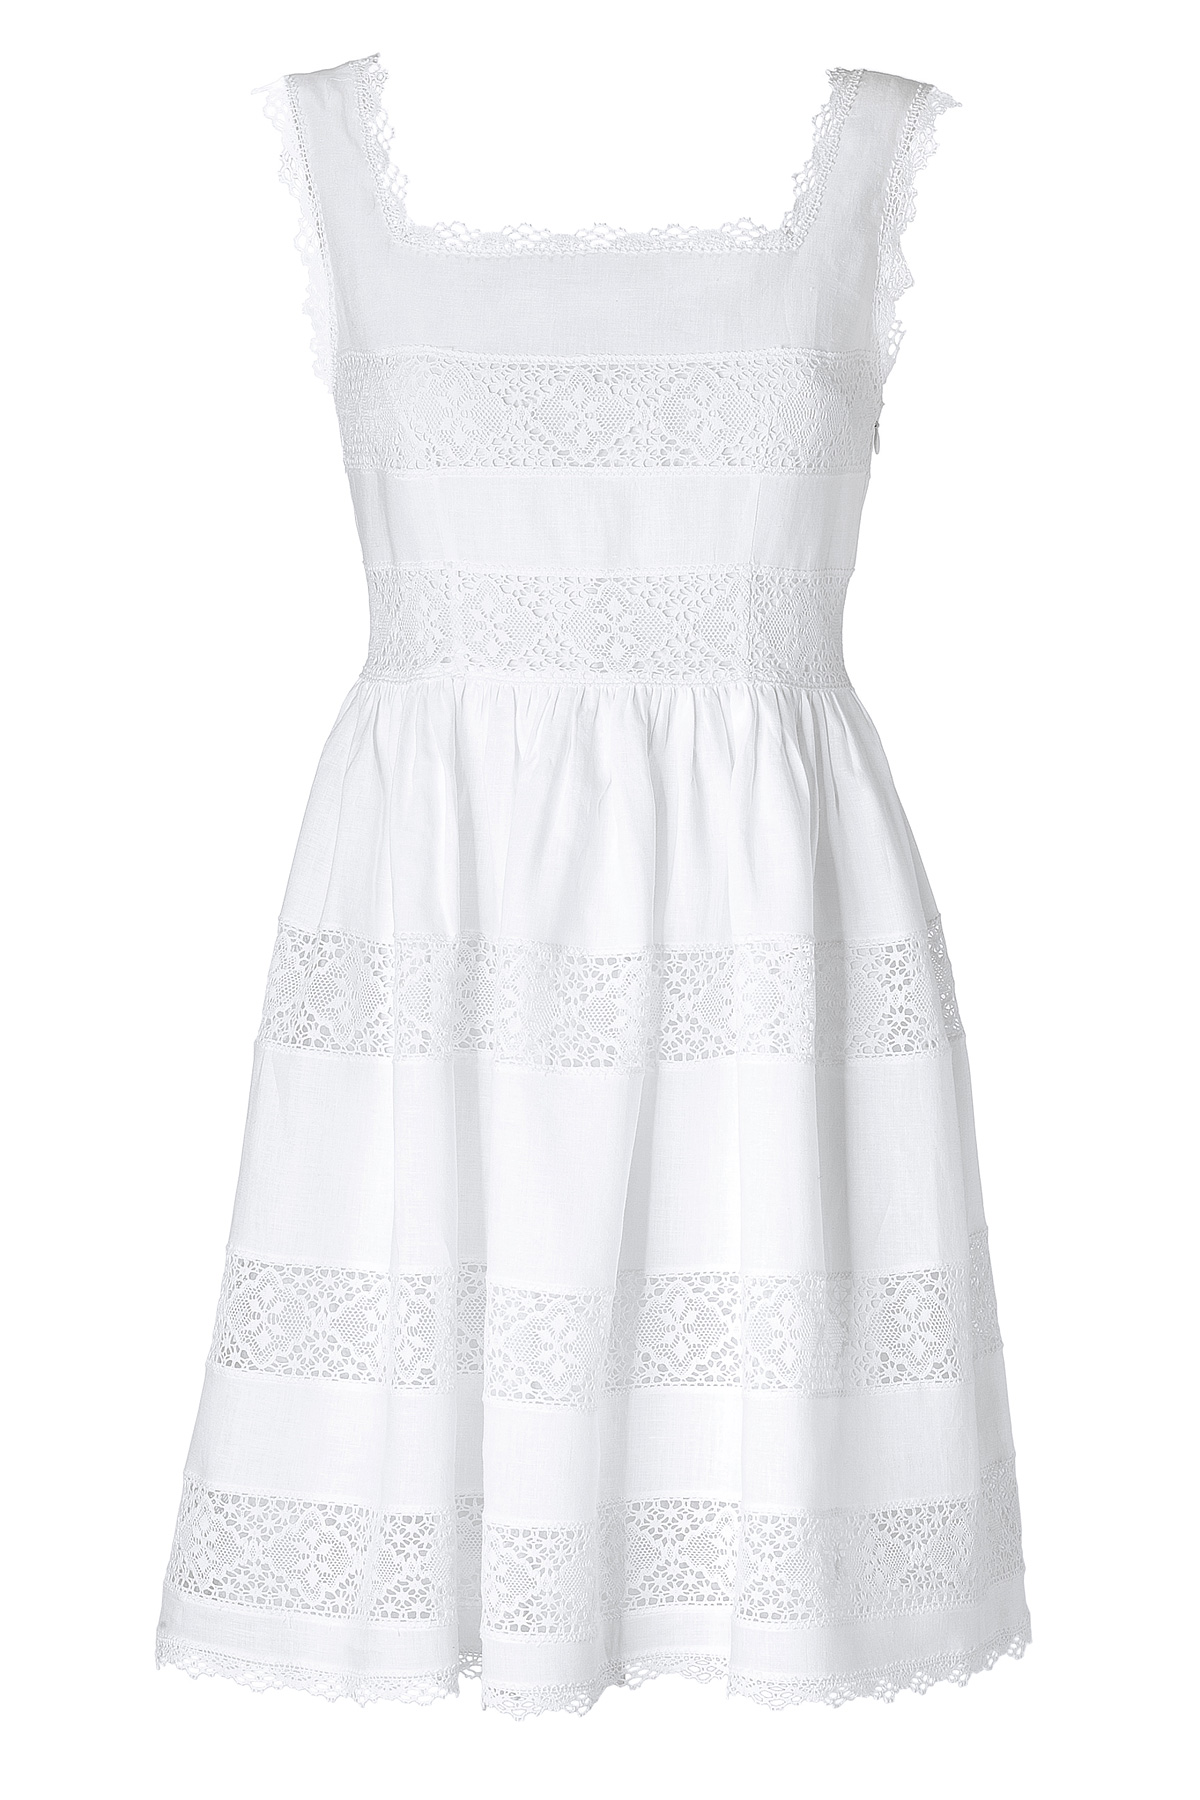 Collette by collette dinnigan Romantic White Cotton Dress in White ...